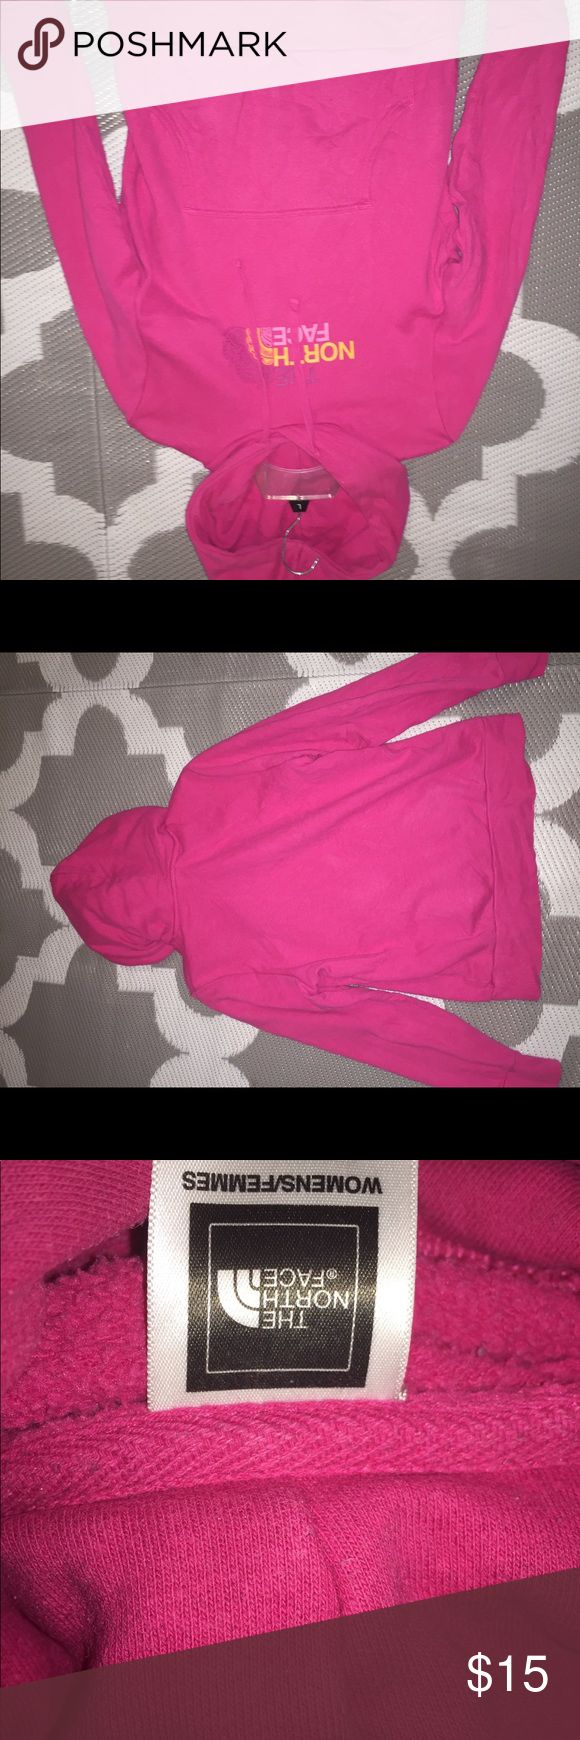 pink north face sweatshirt Perfect for you to run out the door with and oh so comfy! It's very soft and keeps you nice and toasty. Buy it now for cheap! North Face Jackets & Coats